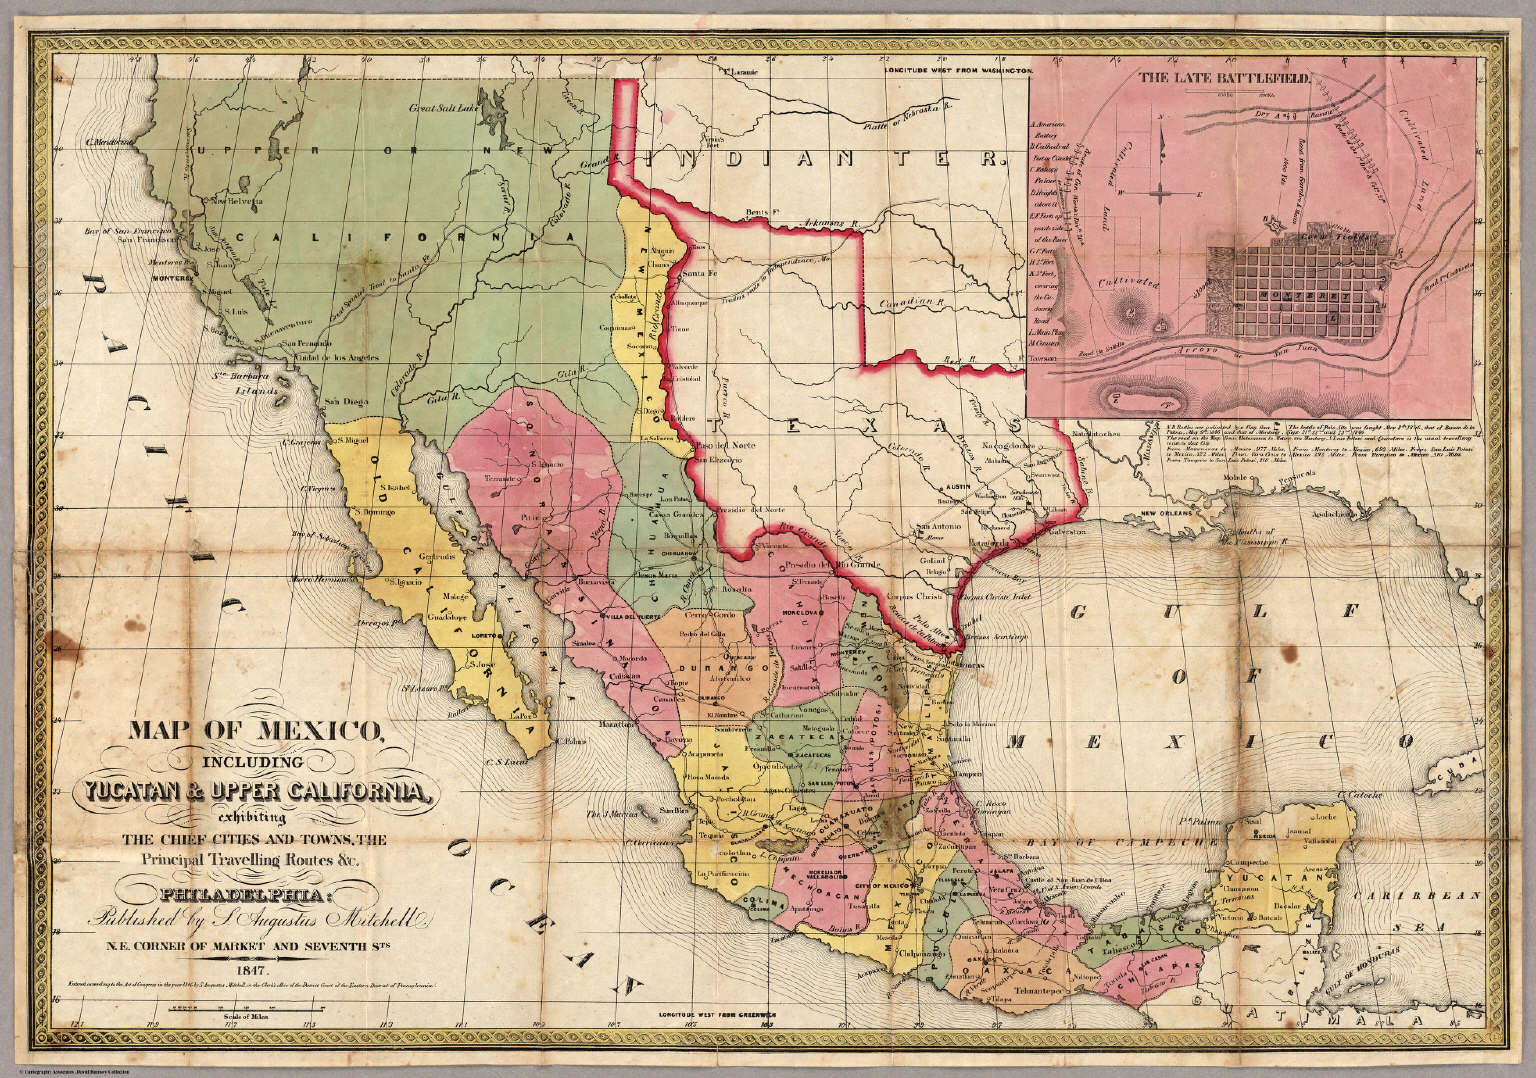 Map Of Mexico Including Yucatan Upper California David – Map of Mexico Cities and Towns